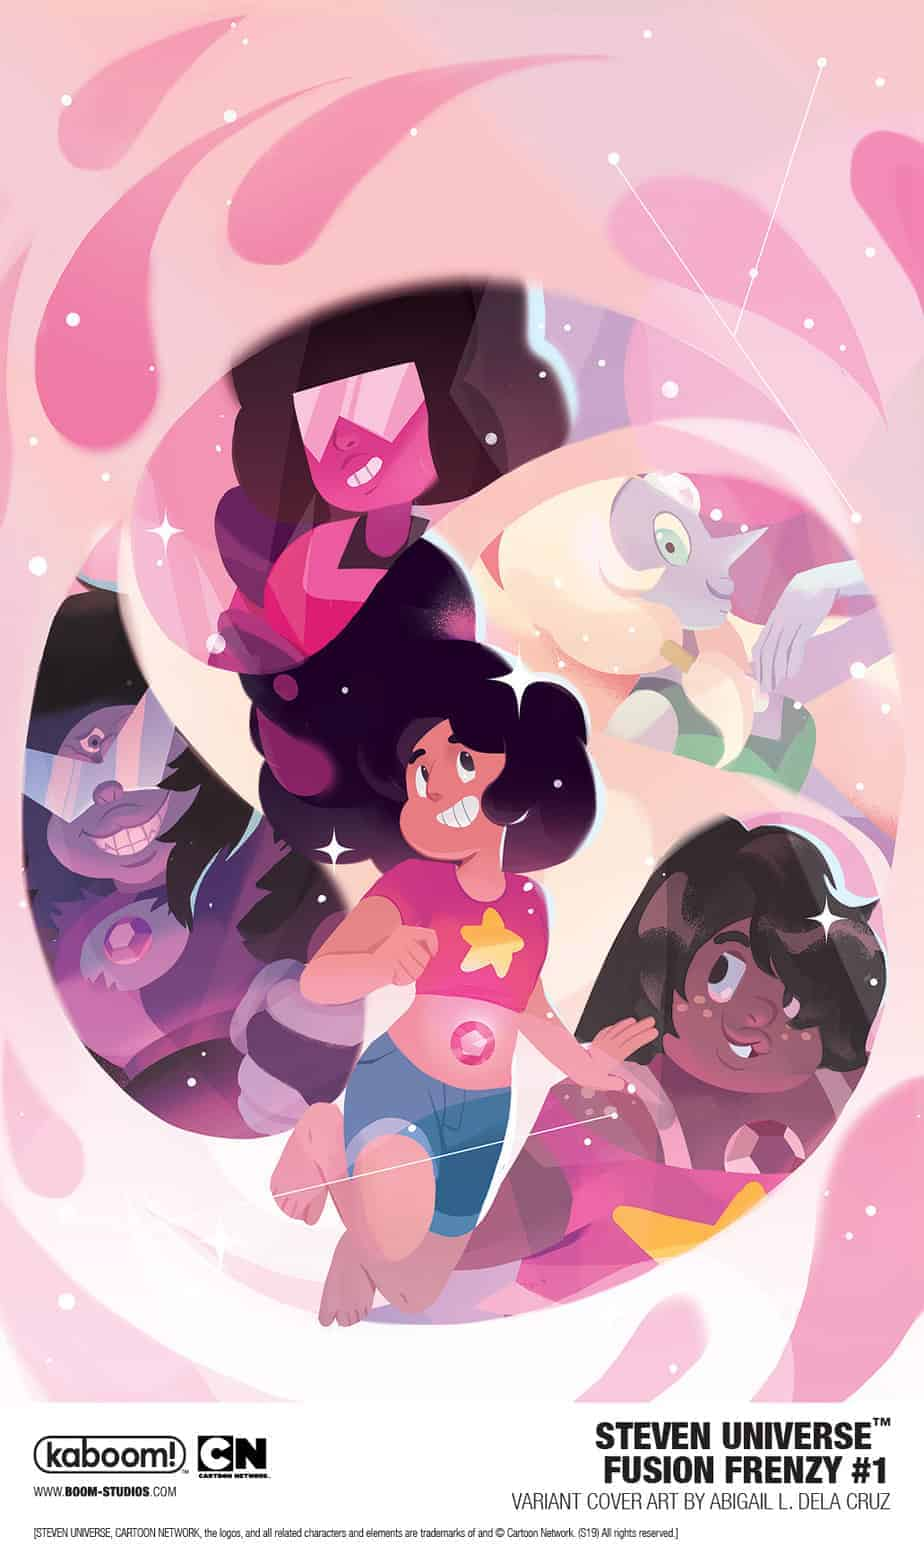 STEVEN UNIVERSE FUSION FRENZY #1 - Incentive Variant Cover